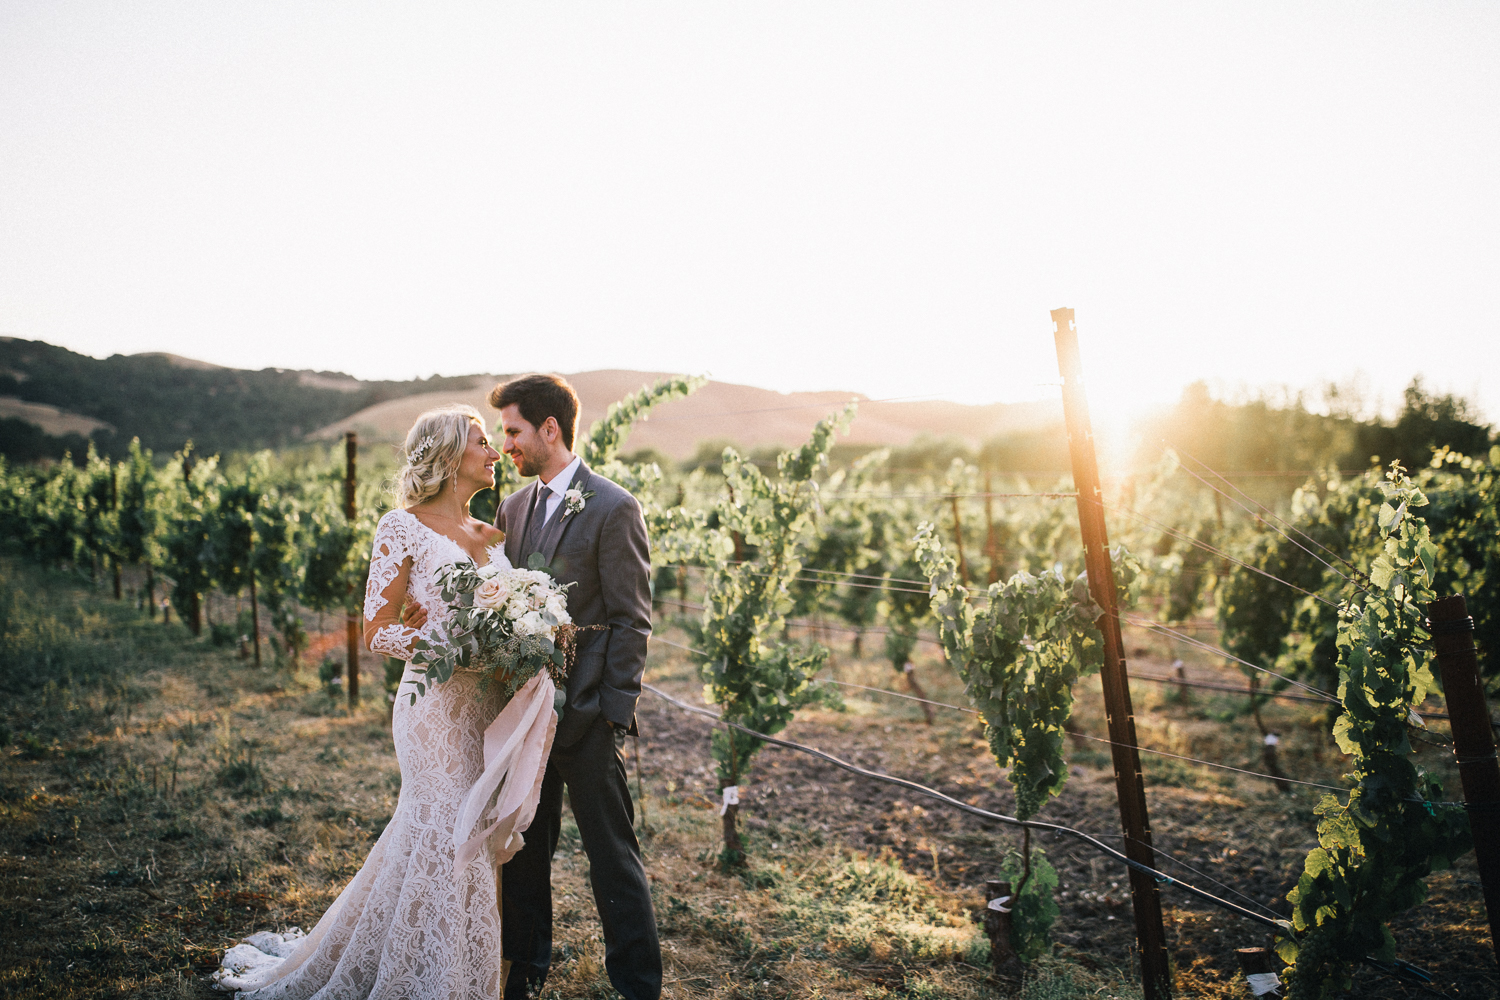 2018_08_ 112018.08.11 Cline Vinyard Wedding Blog Photos Edited For Web 0055.jpg